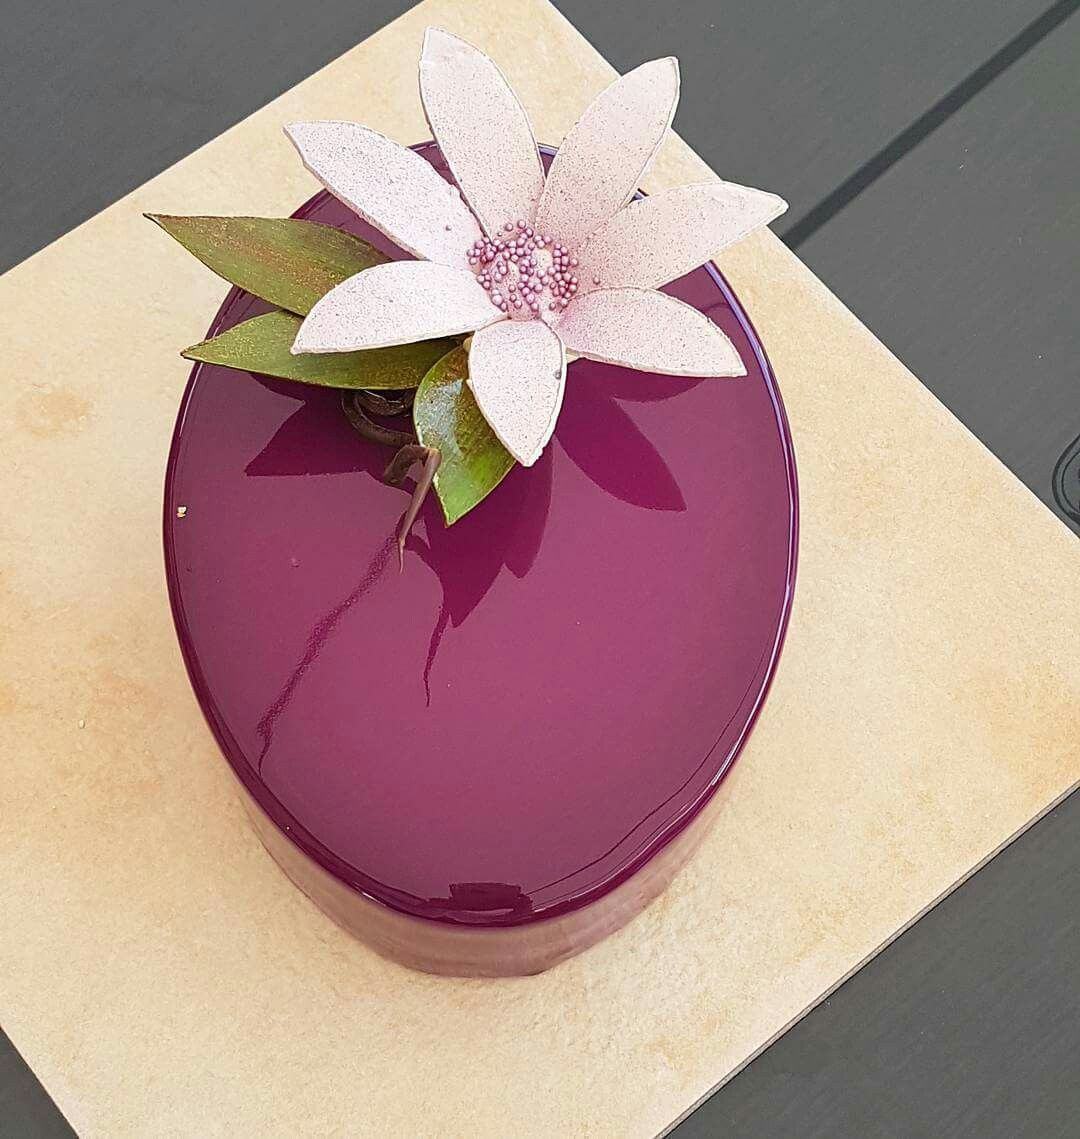 Cocinas Elegantes Pin By Dixie Joyner On Mirror Glaze Cakes Pinterest